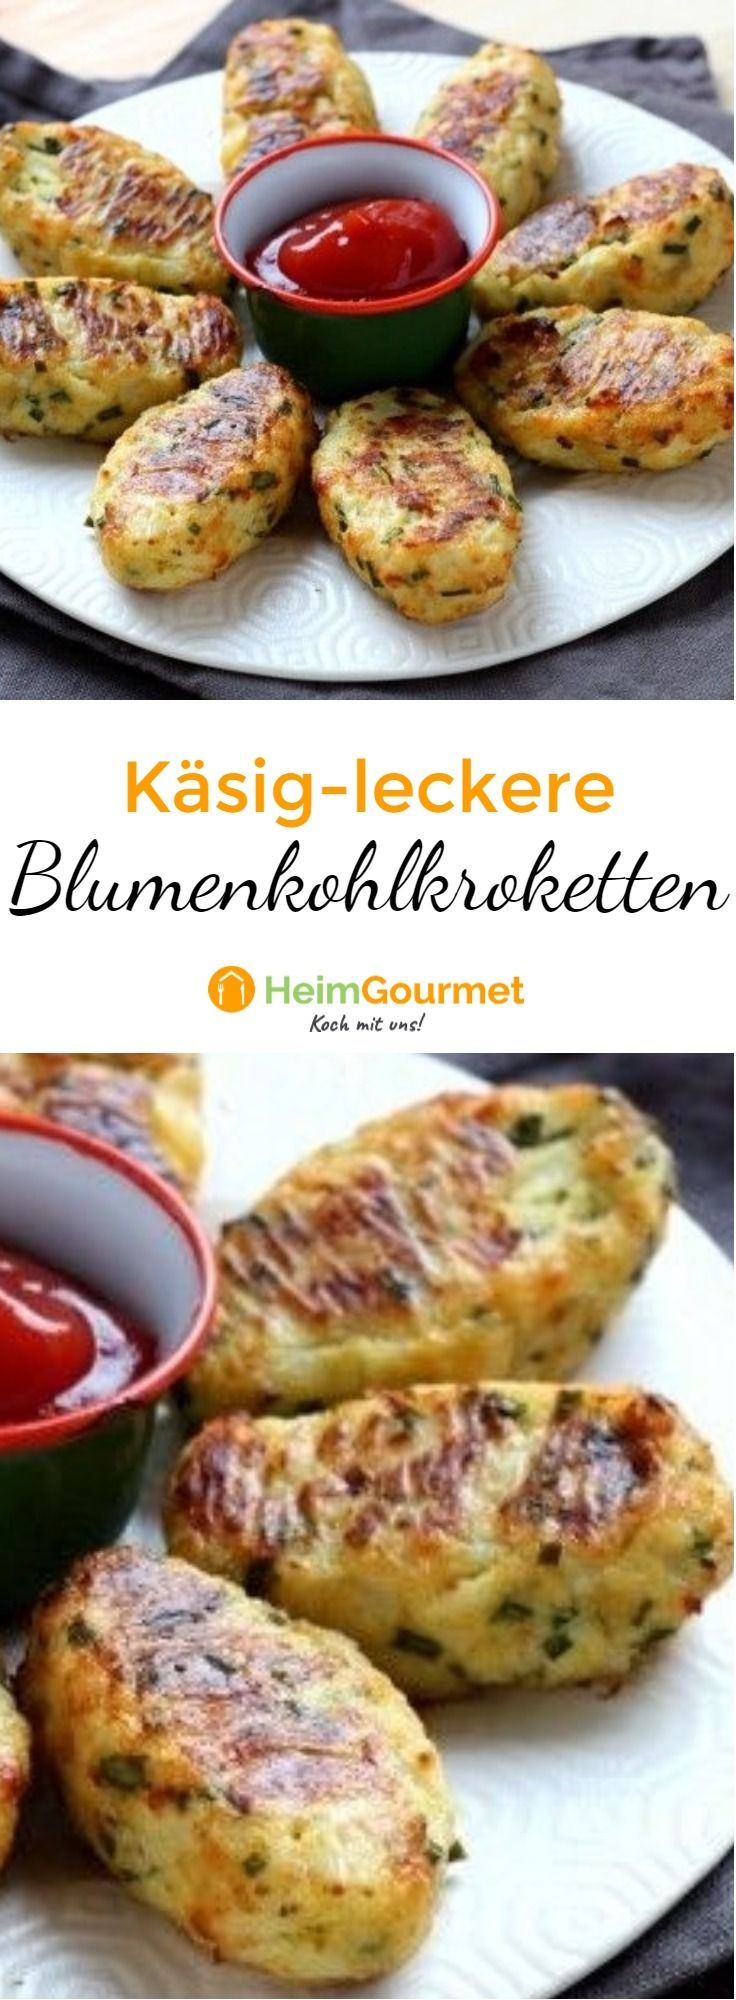 blumenkohl kroketten mit k se gesund und kalorienarm party snacks pinterest gem se. Black Bedroom Furniture Sets. Home Design Ideas